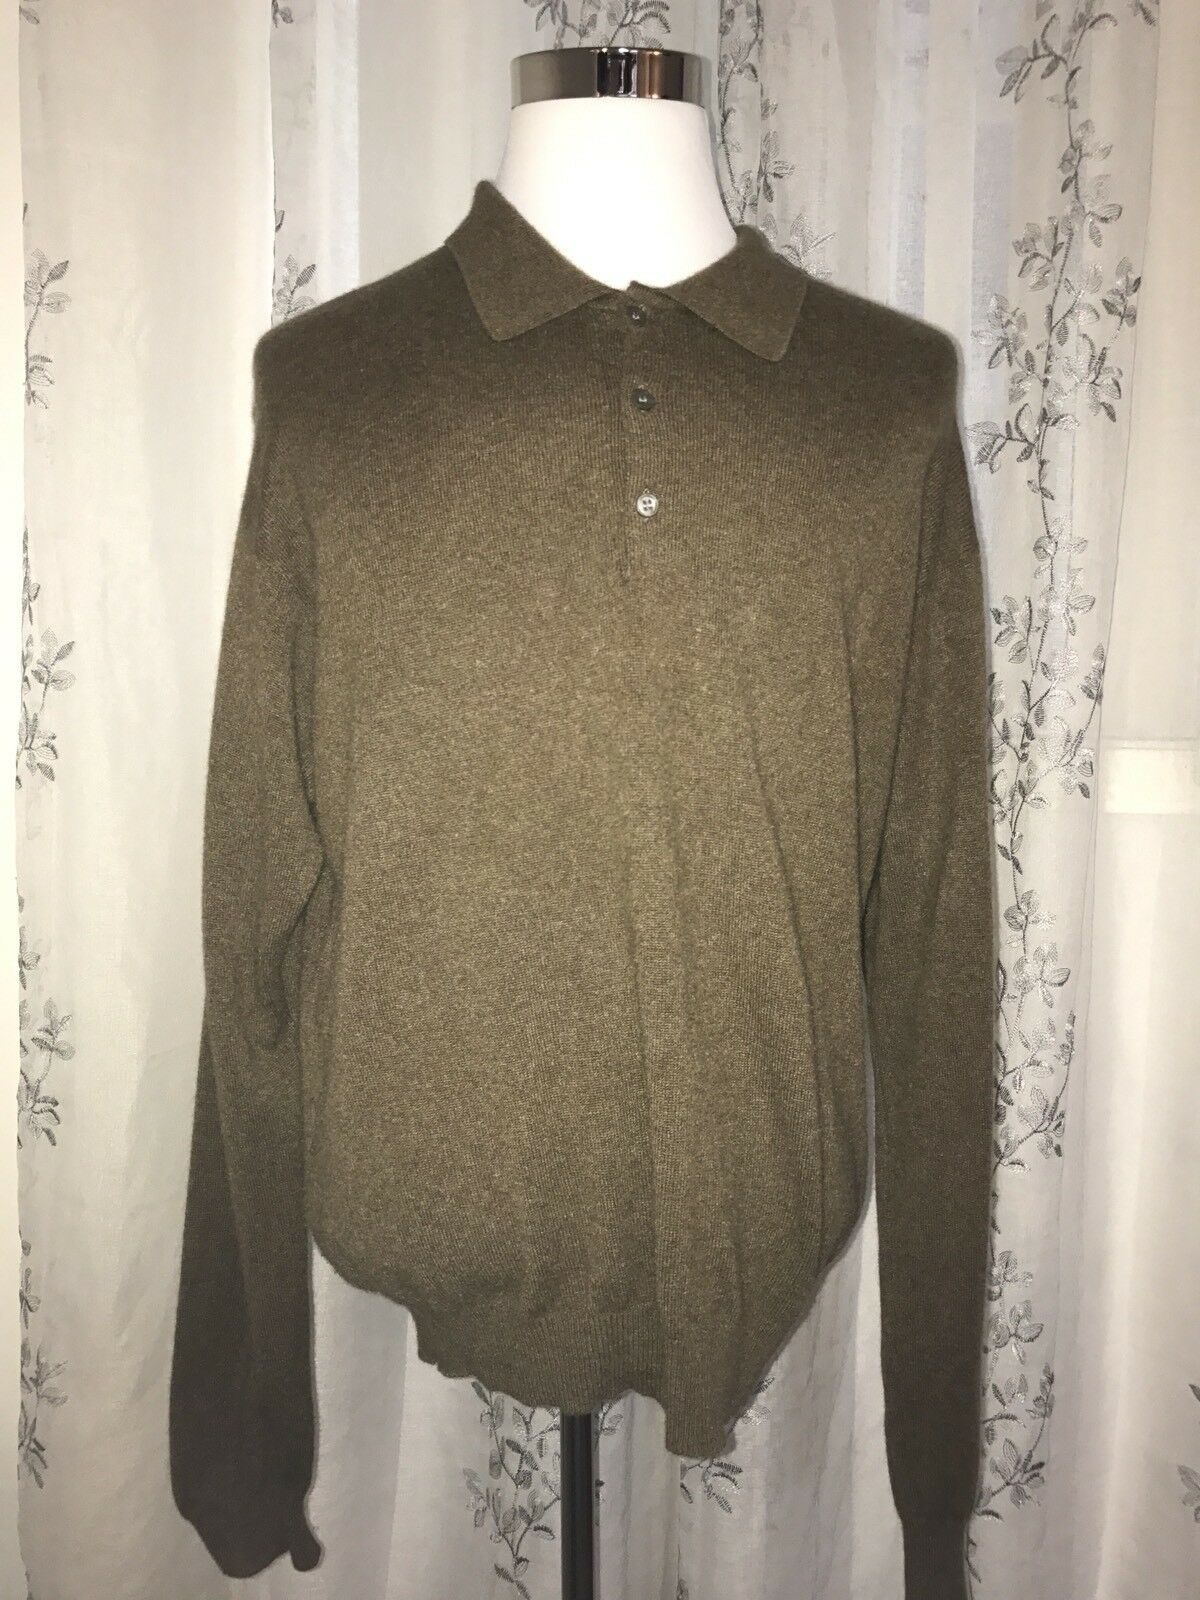 Macy's Club Room 2-Ply 100% Cashmere Heather Braun Polo Style Sweater Größe L